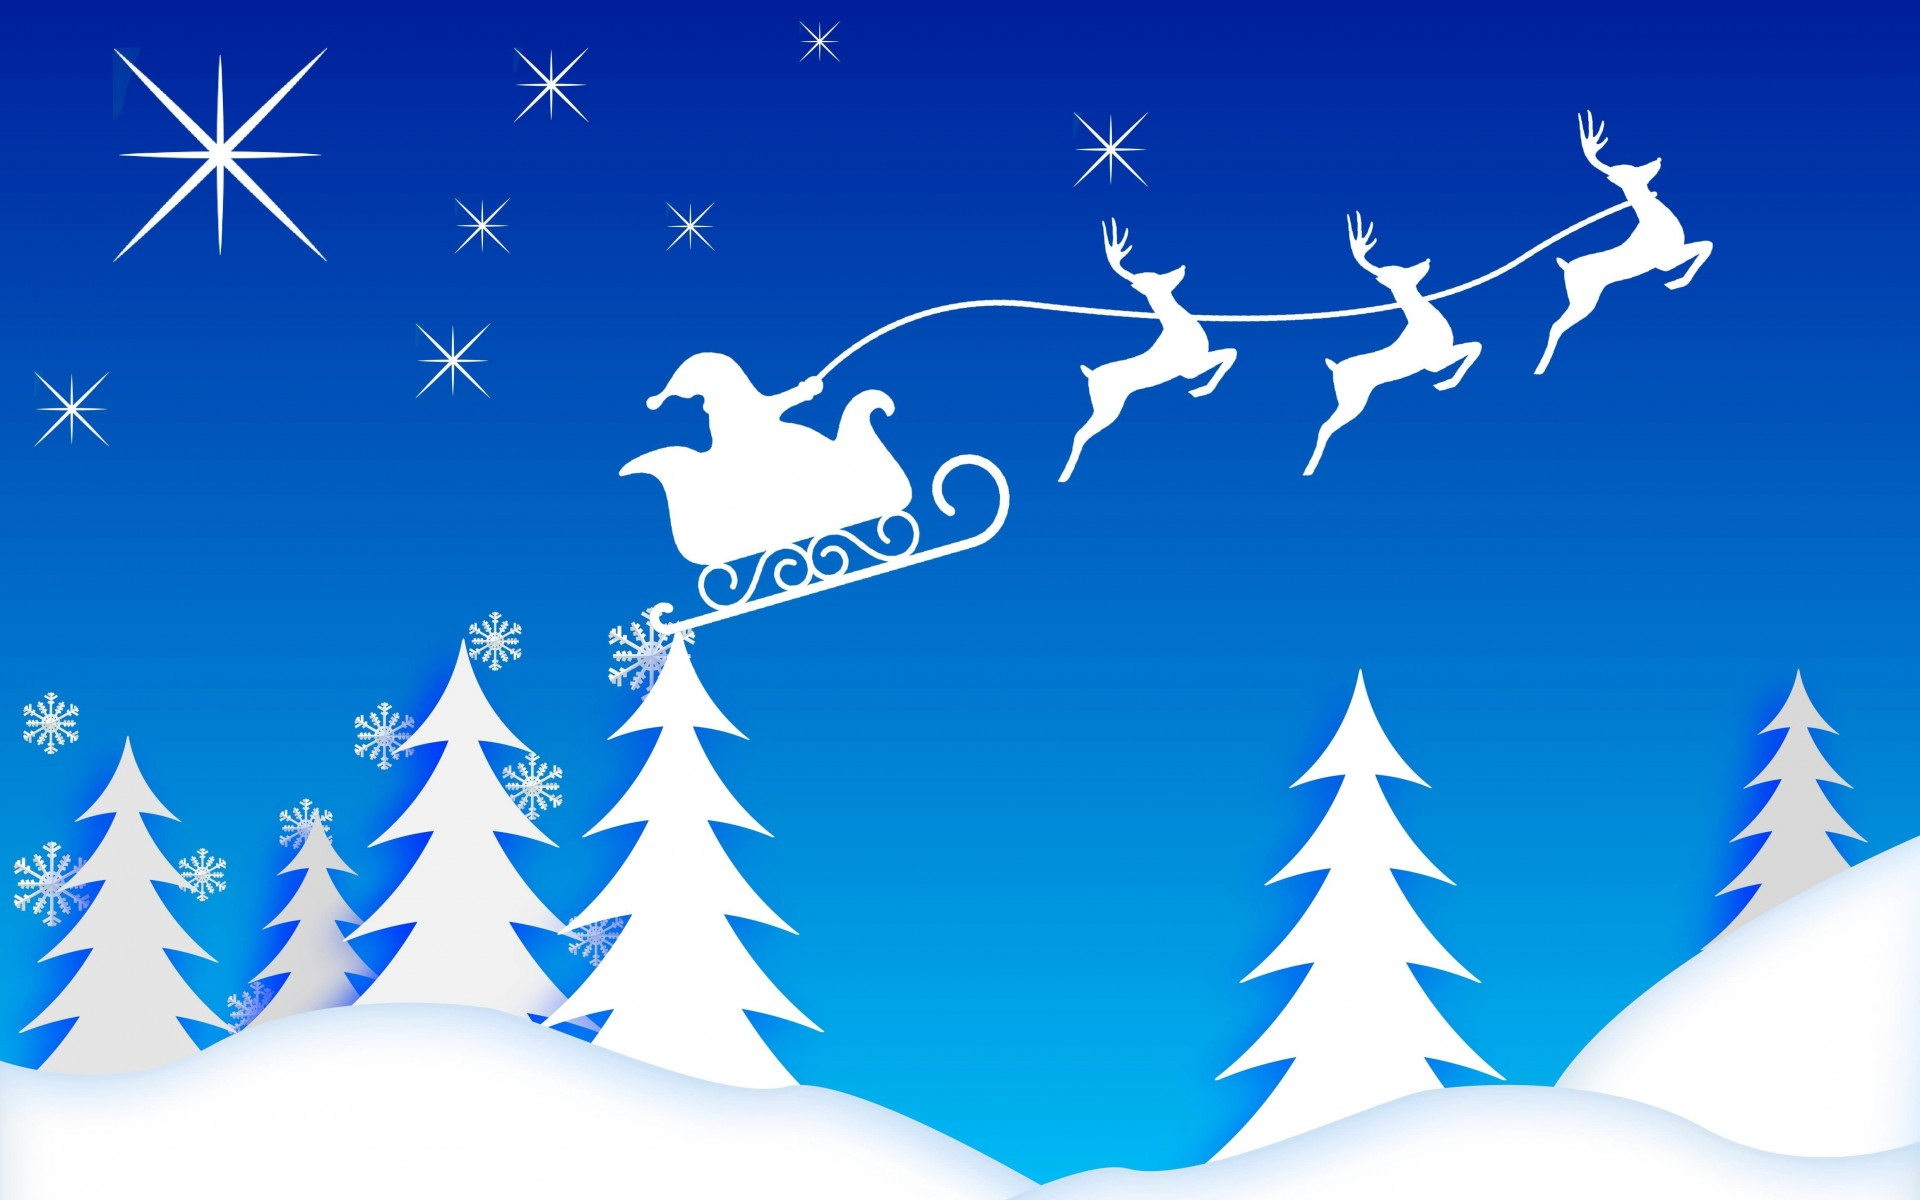 Santa's Sleigh Illustration Wallpaper for Desktop 1920x1200